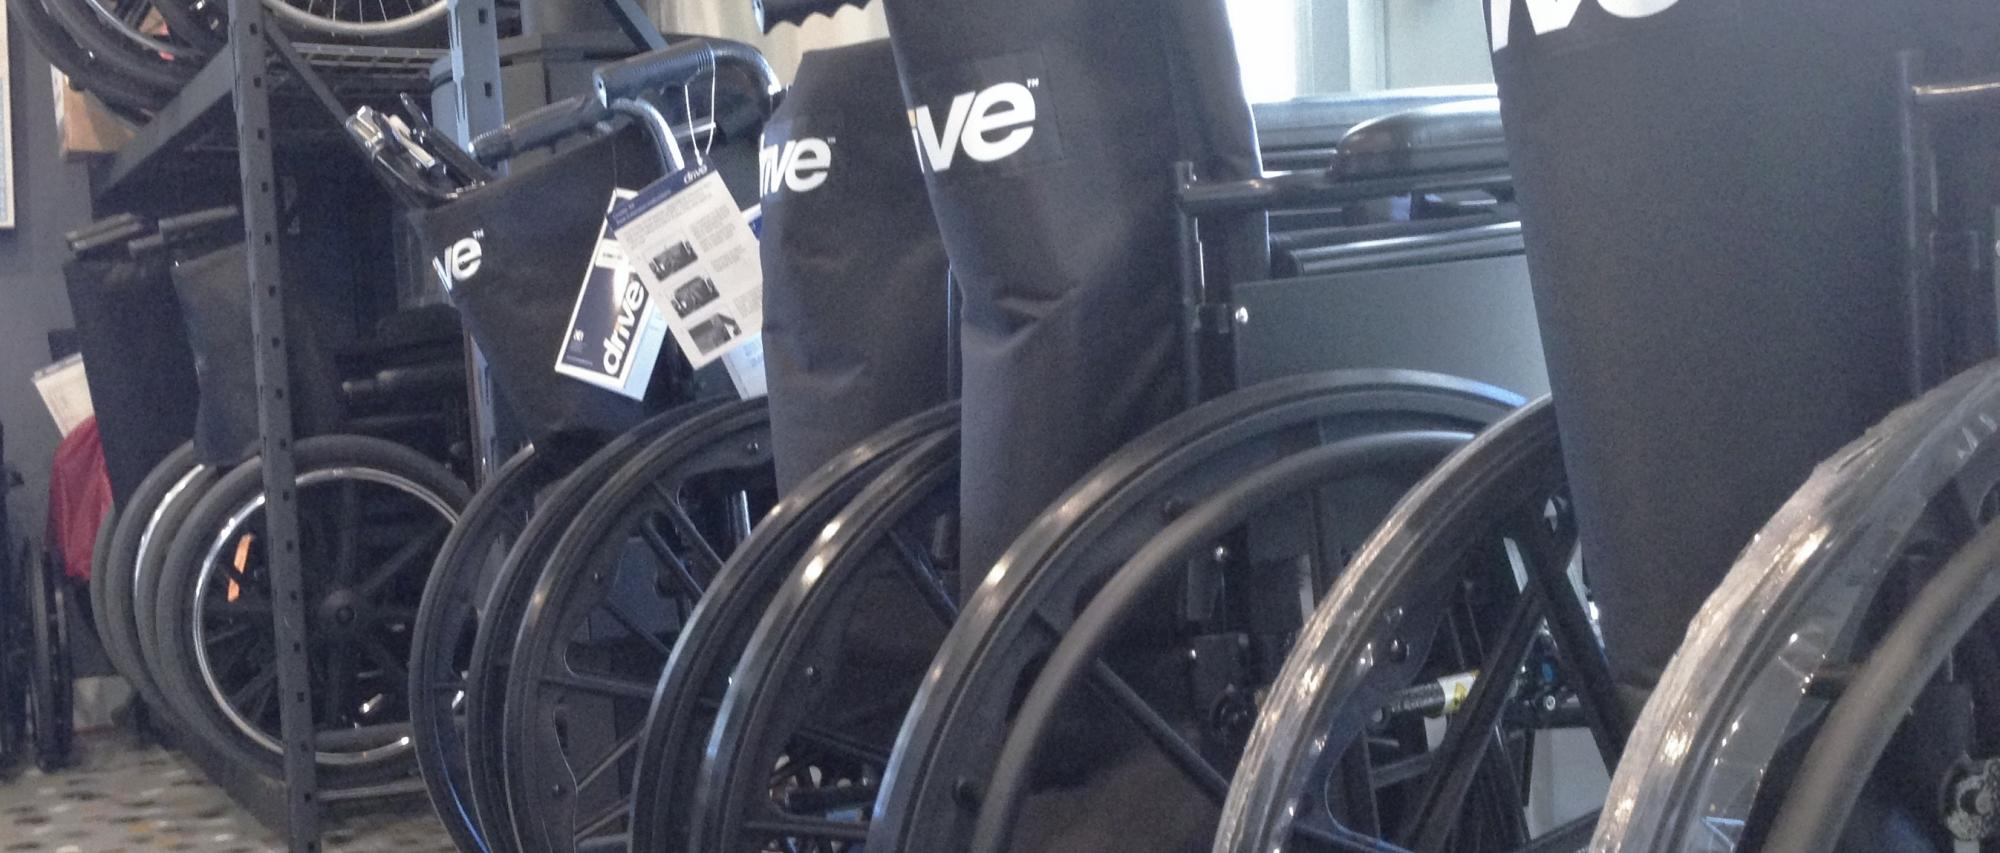 Manual Wheelchairs, Tilt Wheelchairs, & Power Wheelchairs